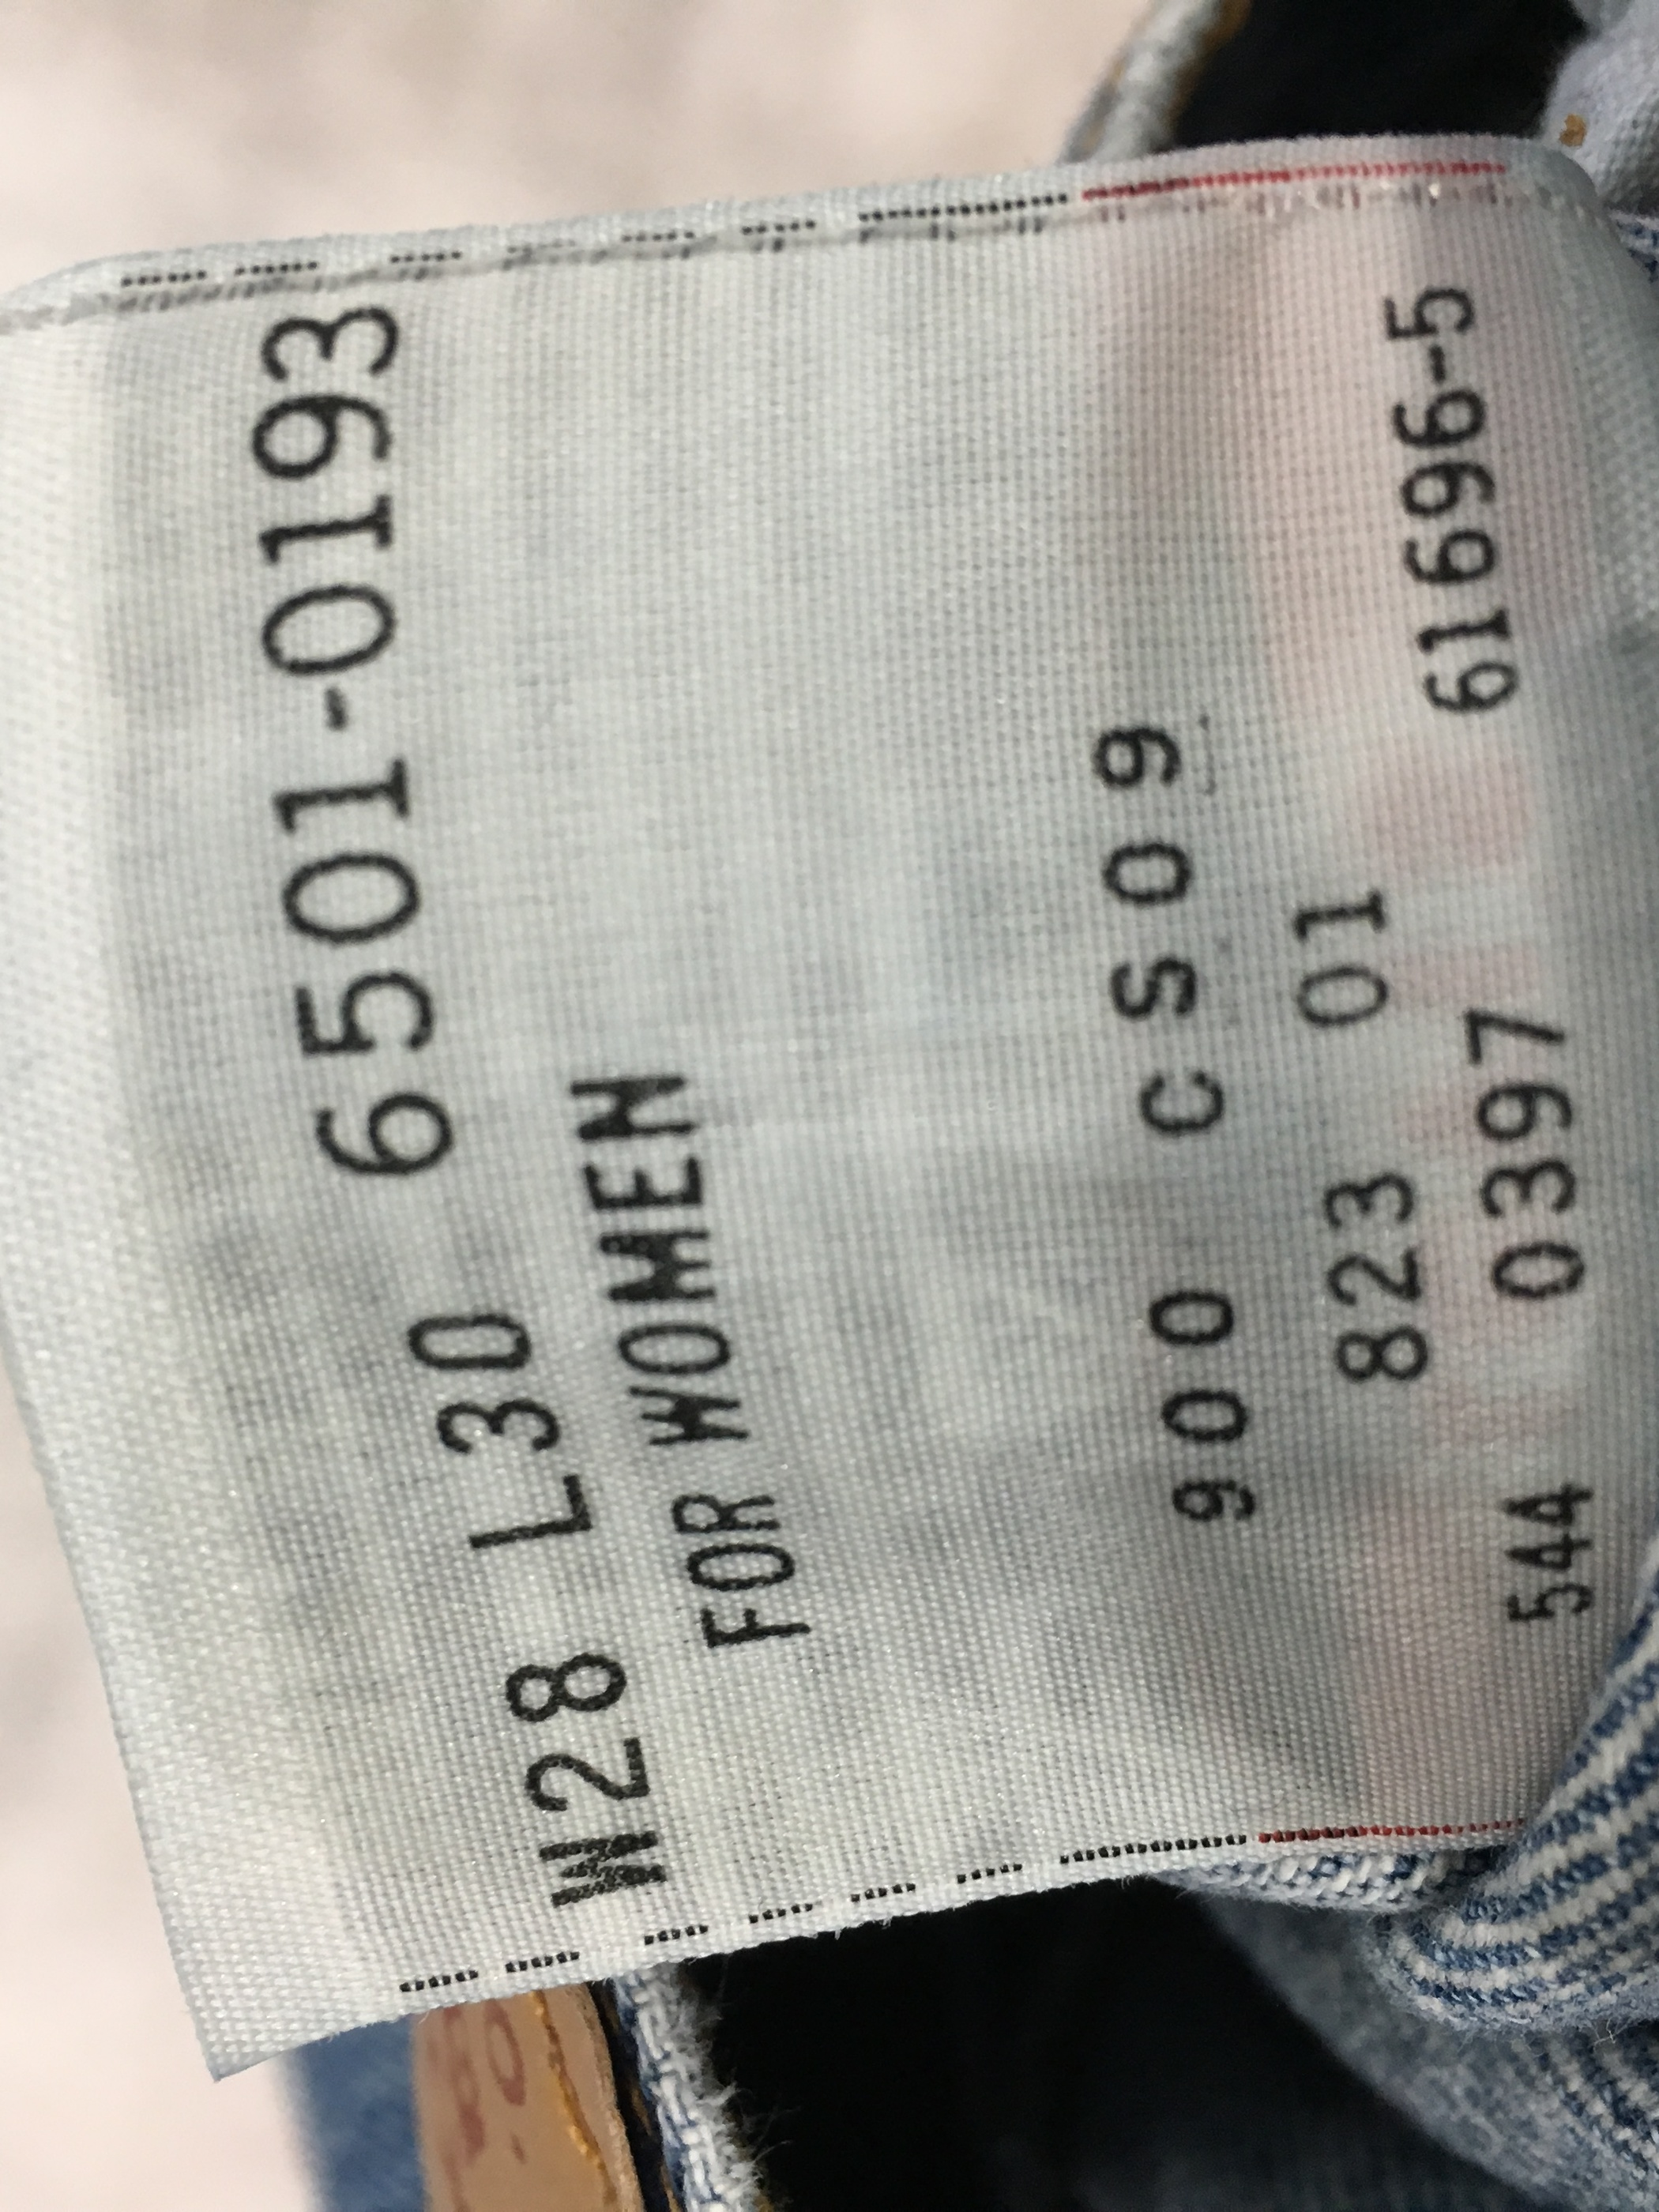 Levi's 501 denim pants